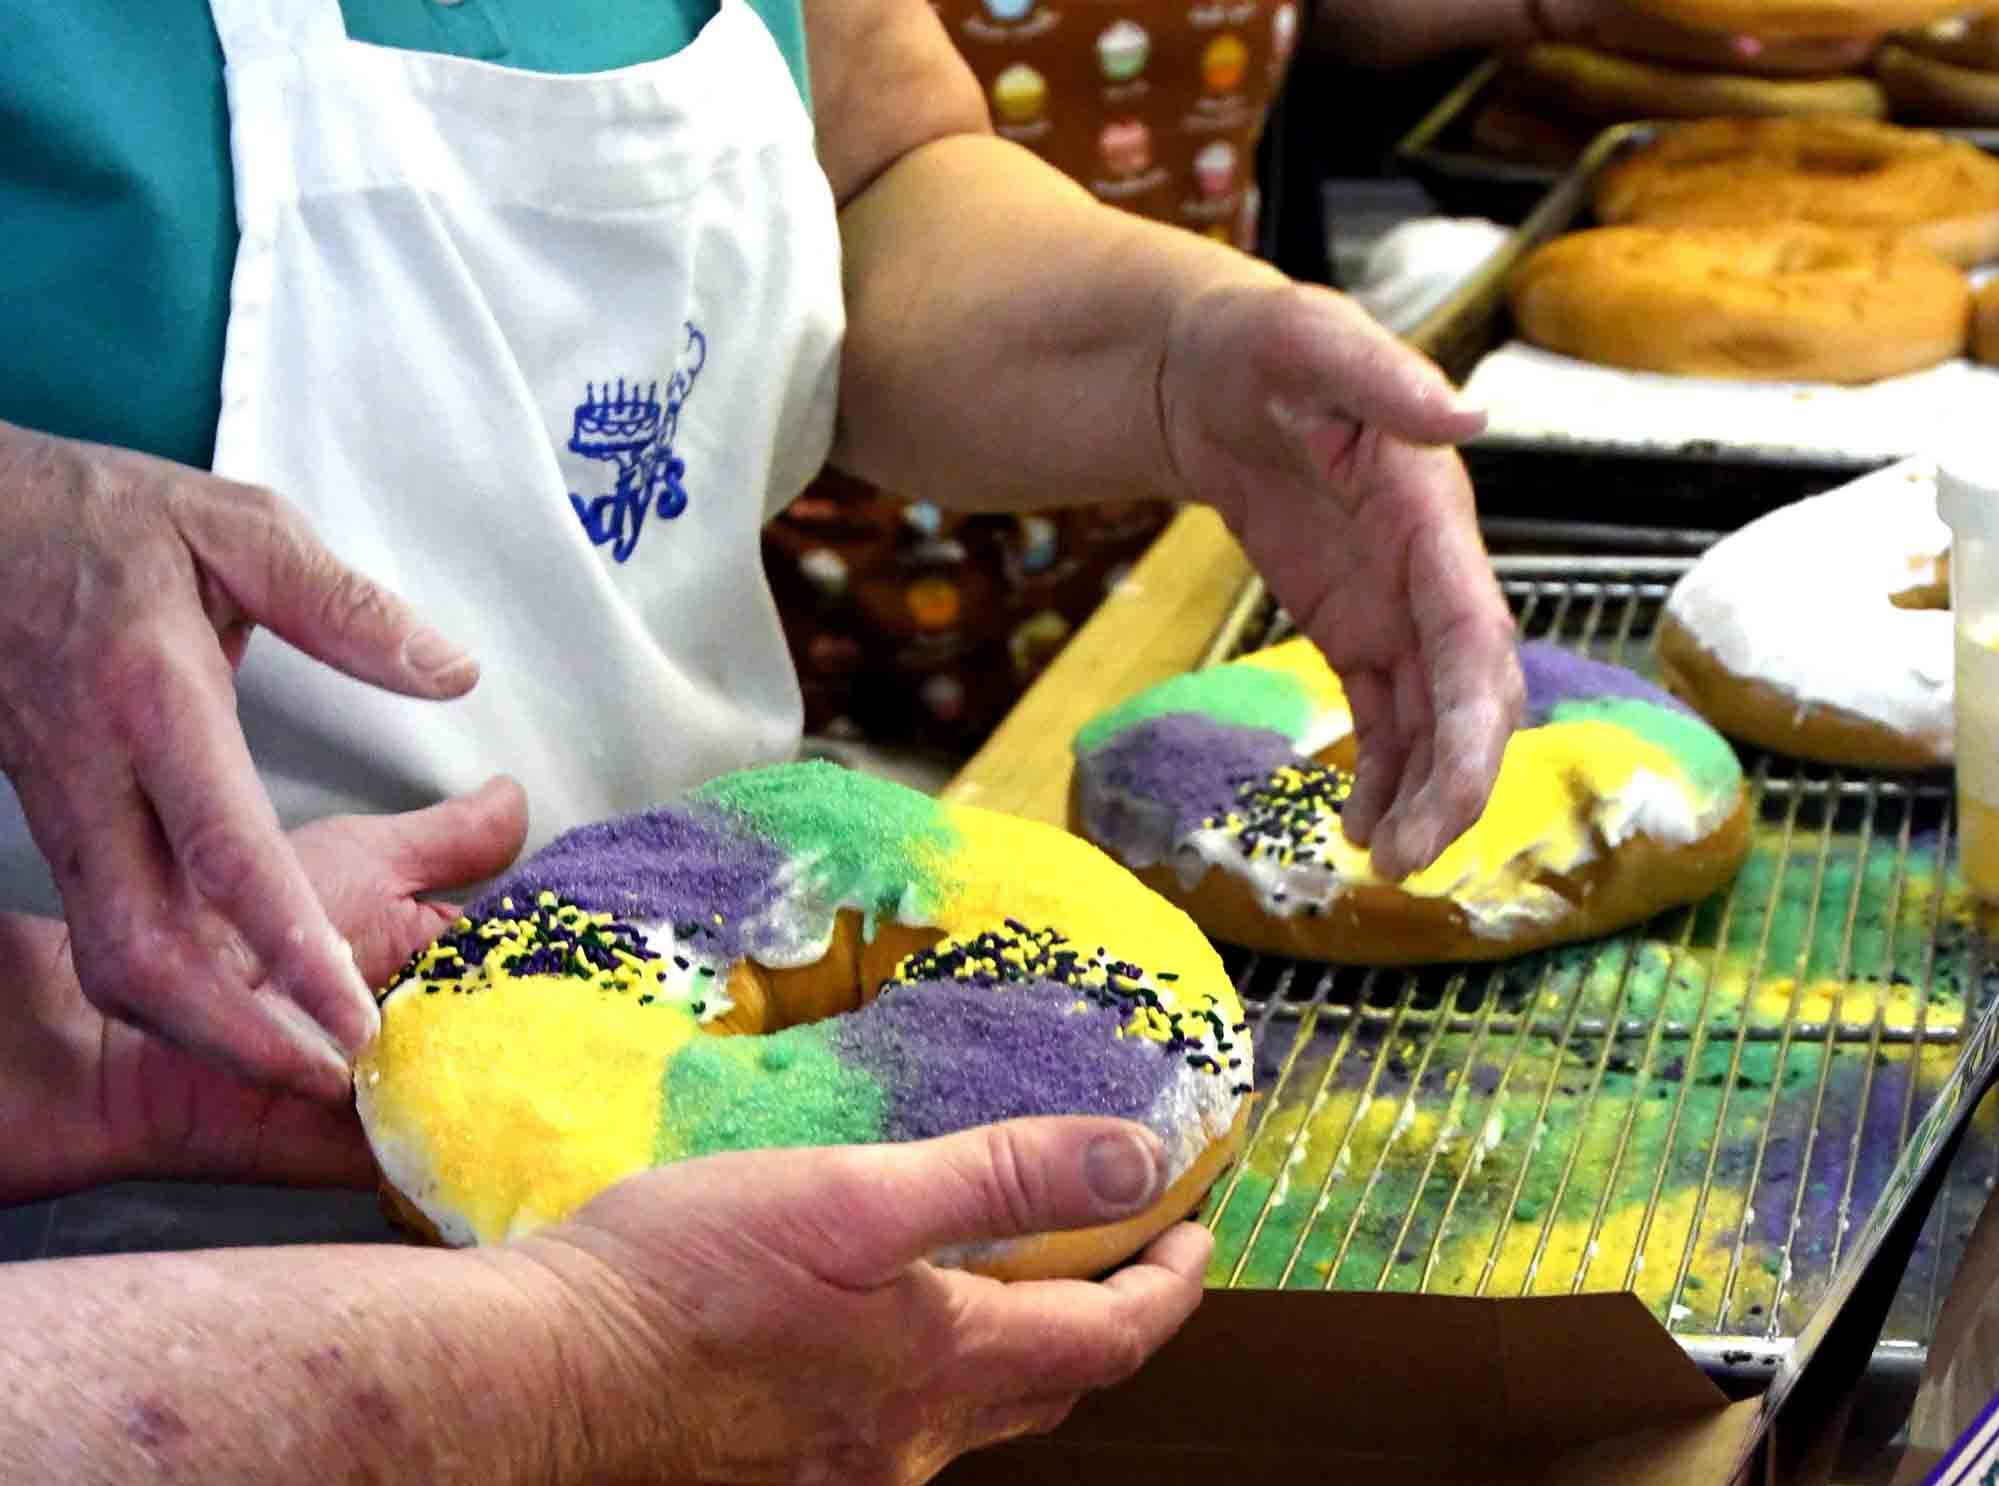 Jody's Bakery makes around 15 different flavors of king cakes during the Mardi Gras season. They can be found at Keith's Superstore, Strick's BBQ and Pier 98.